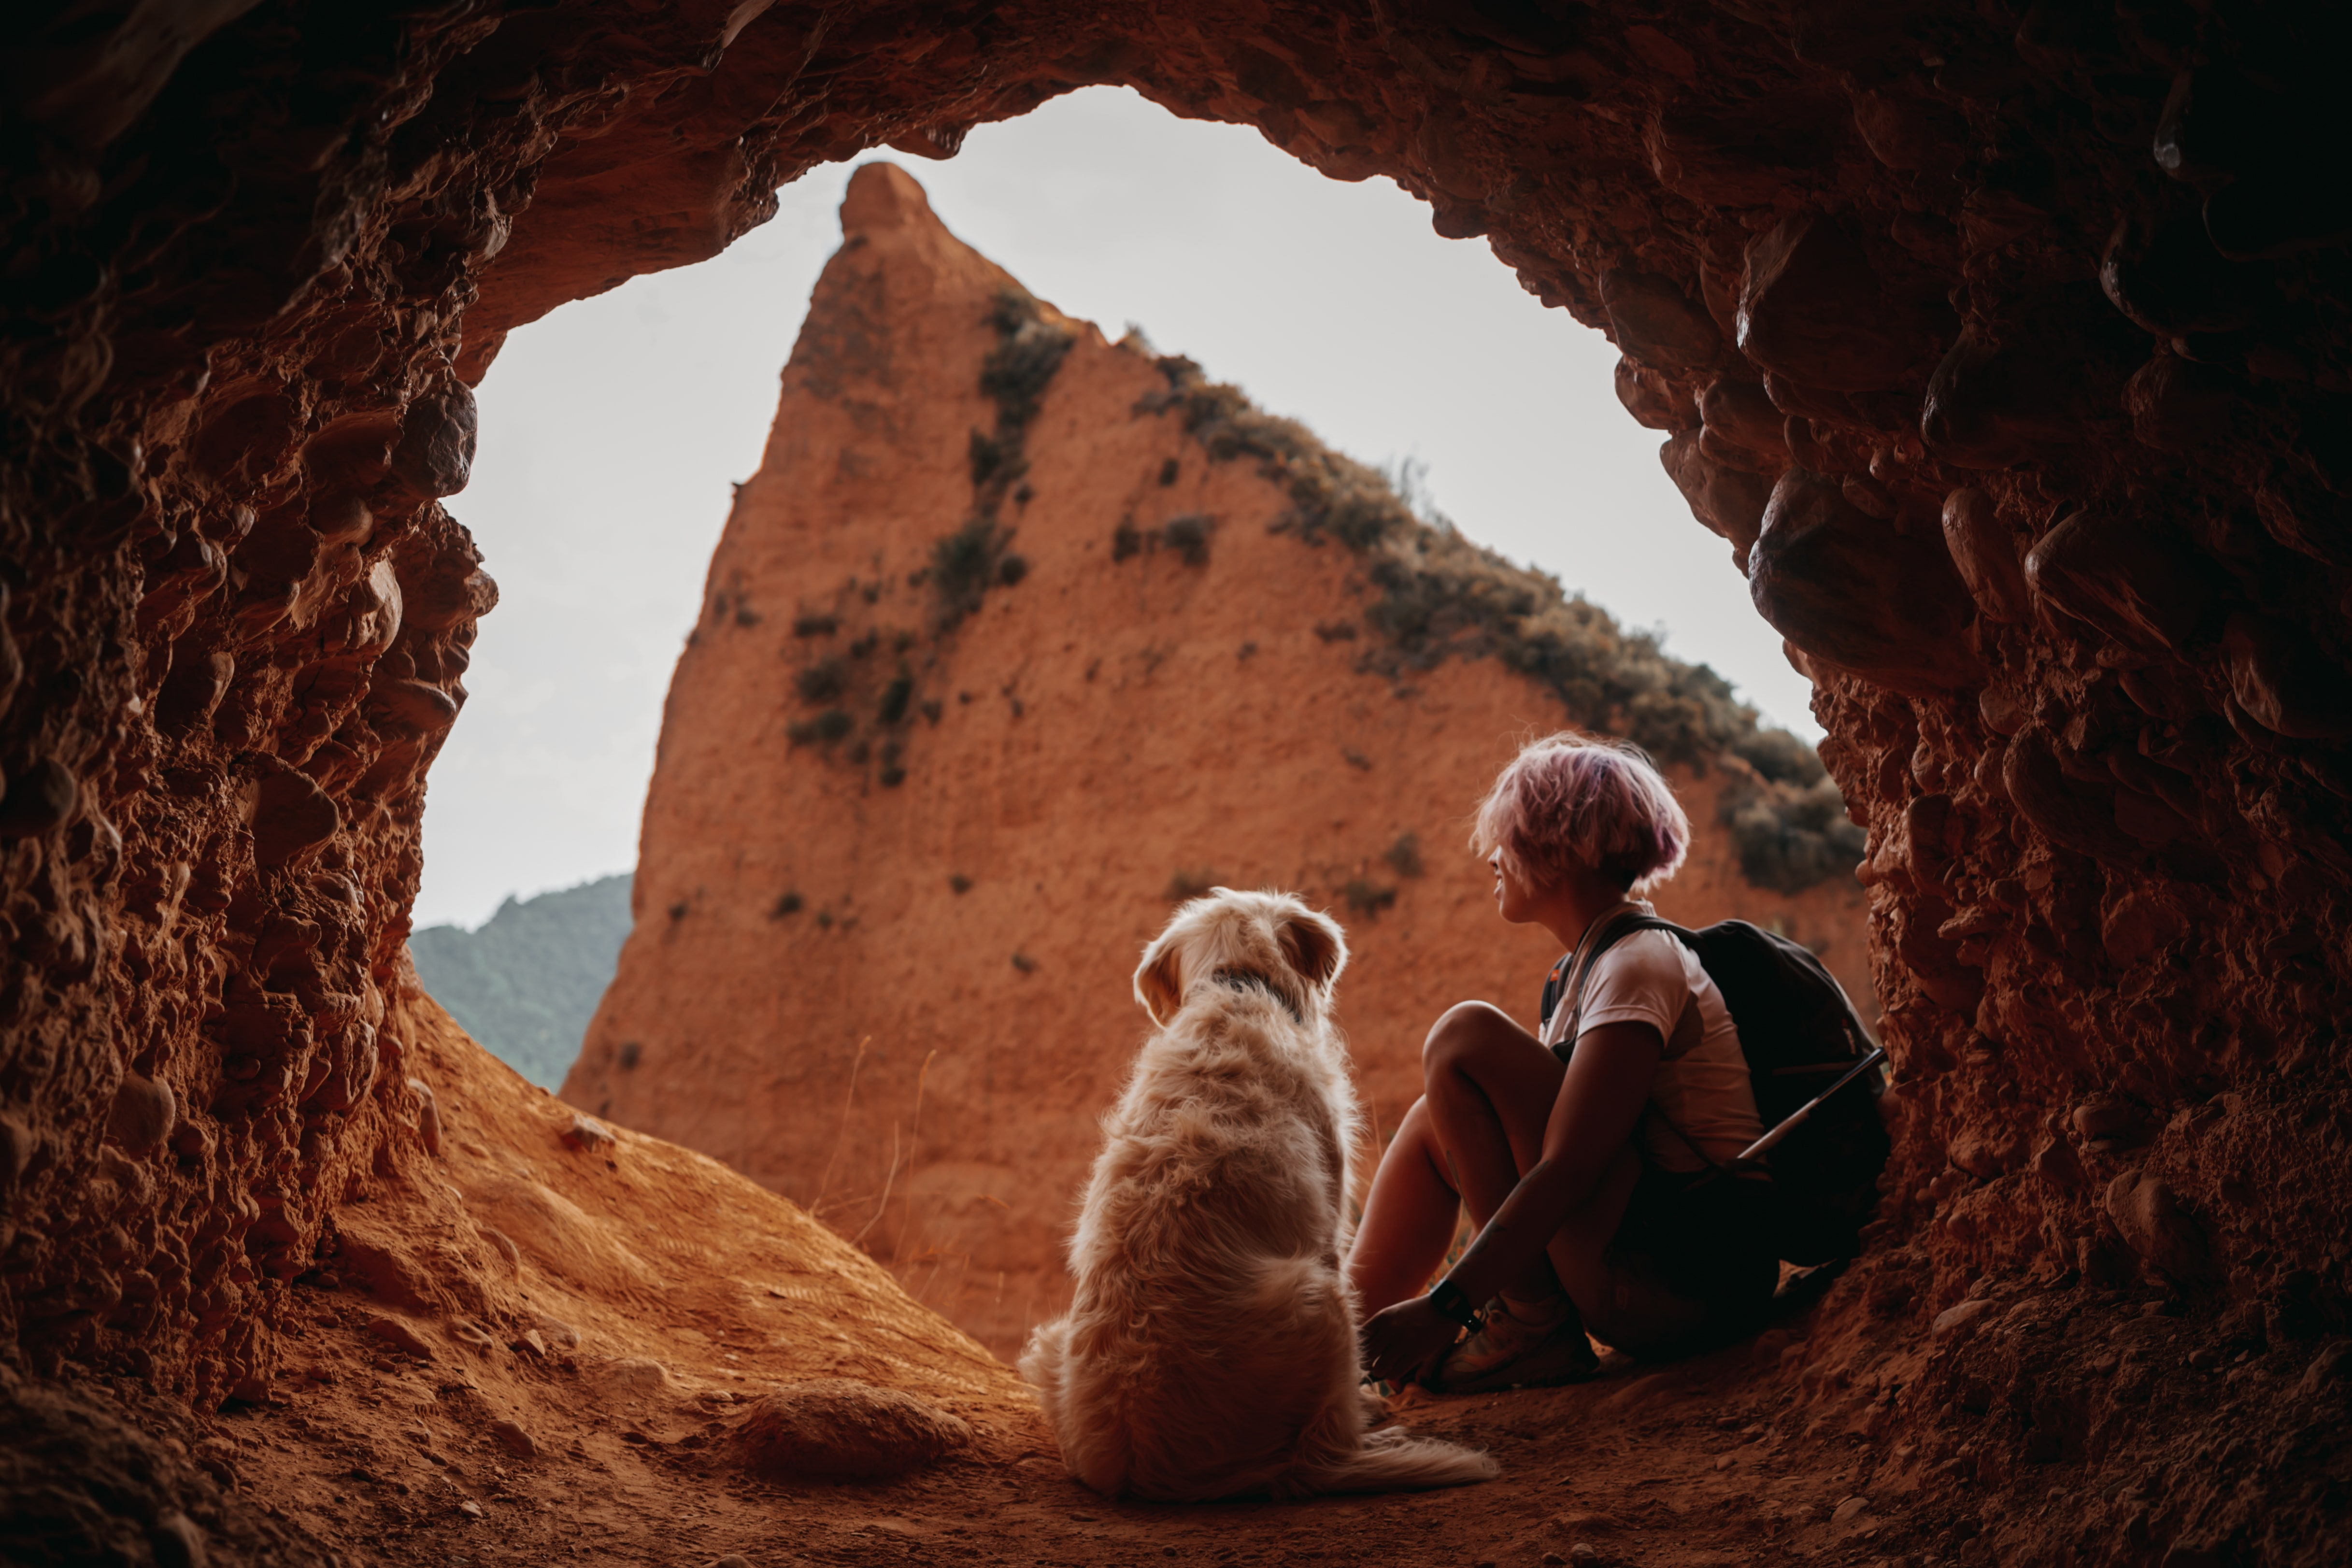 Dog and Person sitting in a cut out rock fromation looking out at the open.